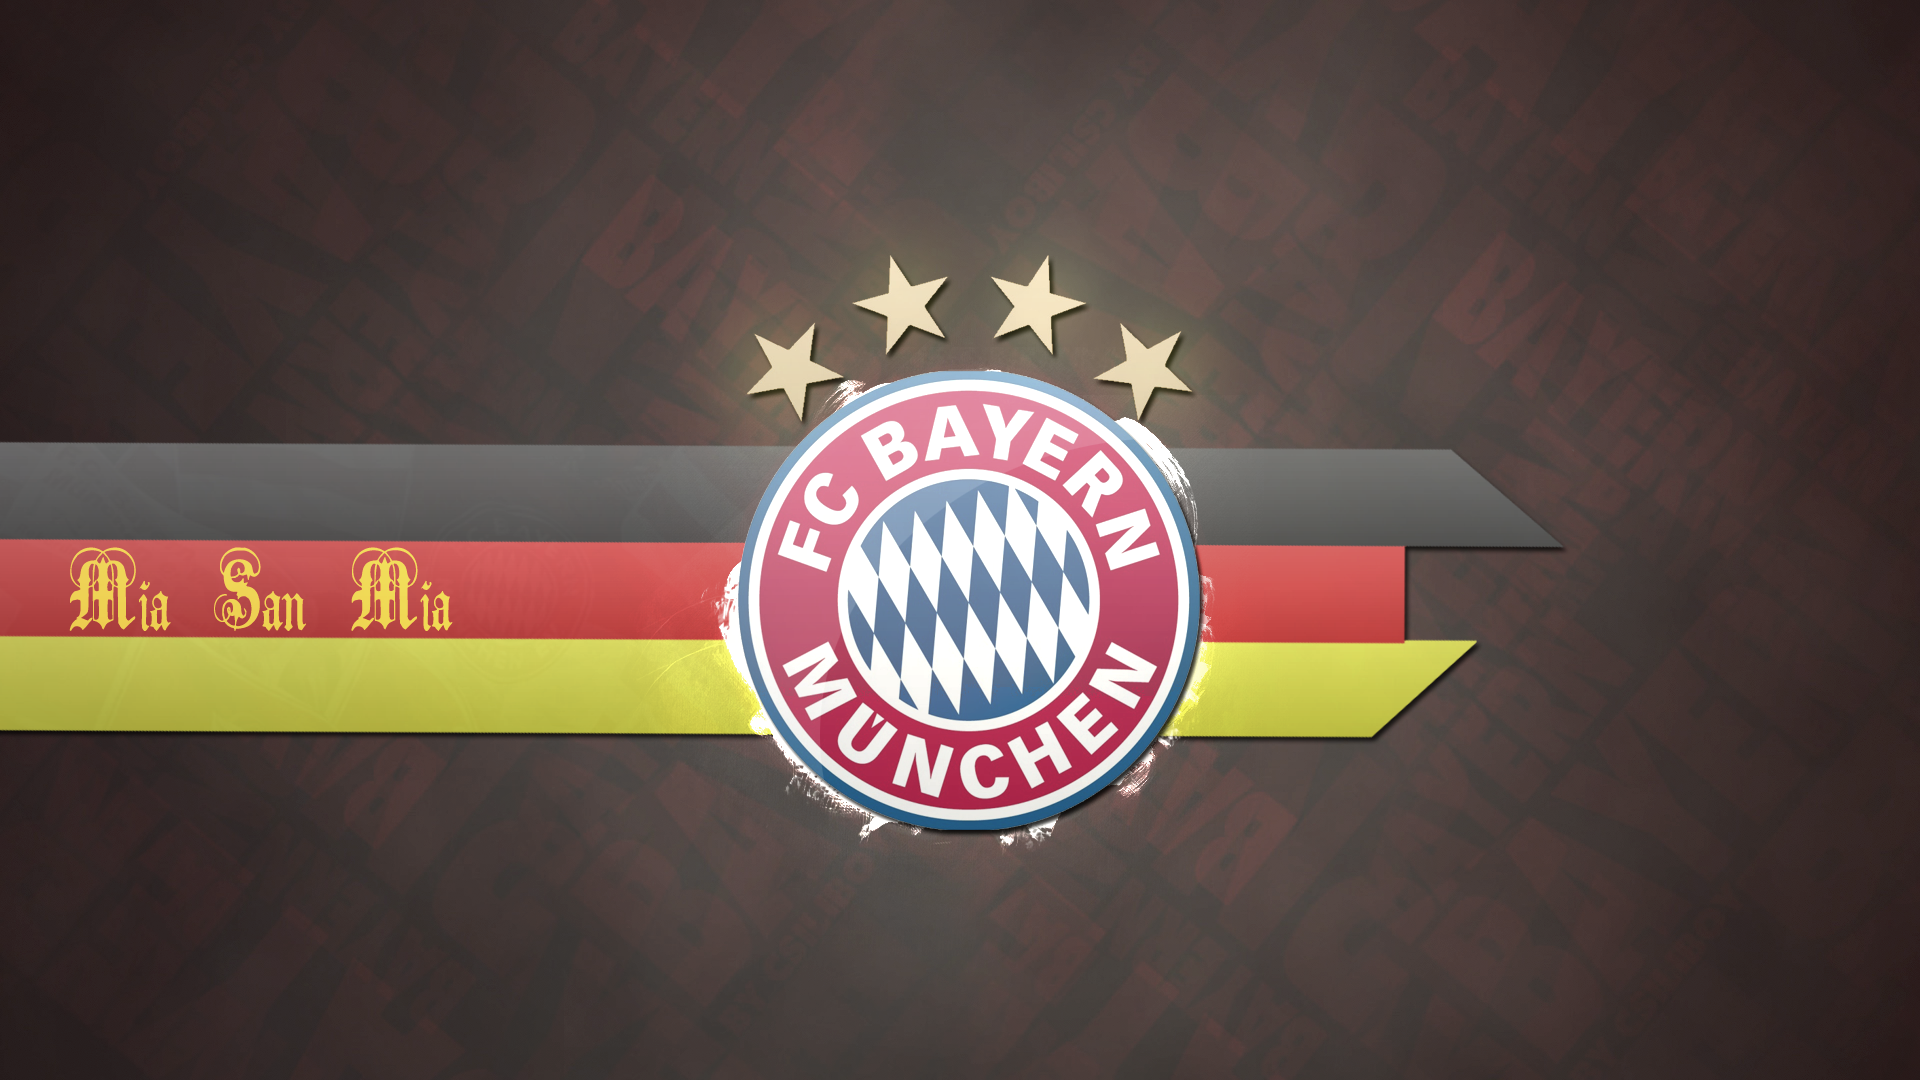 Mia San Mia Logo Bayern Munich Wallpapers